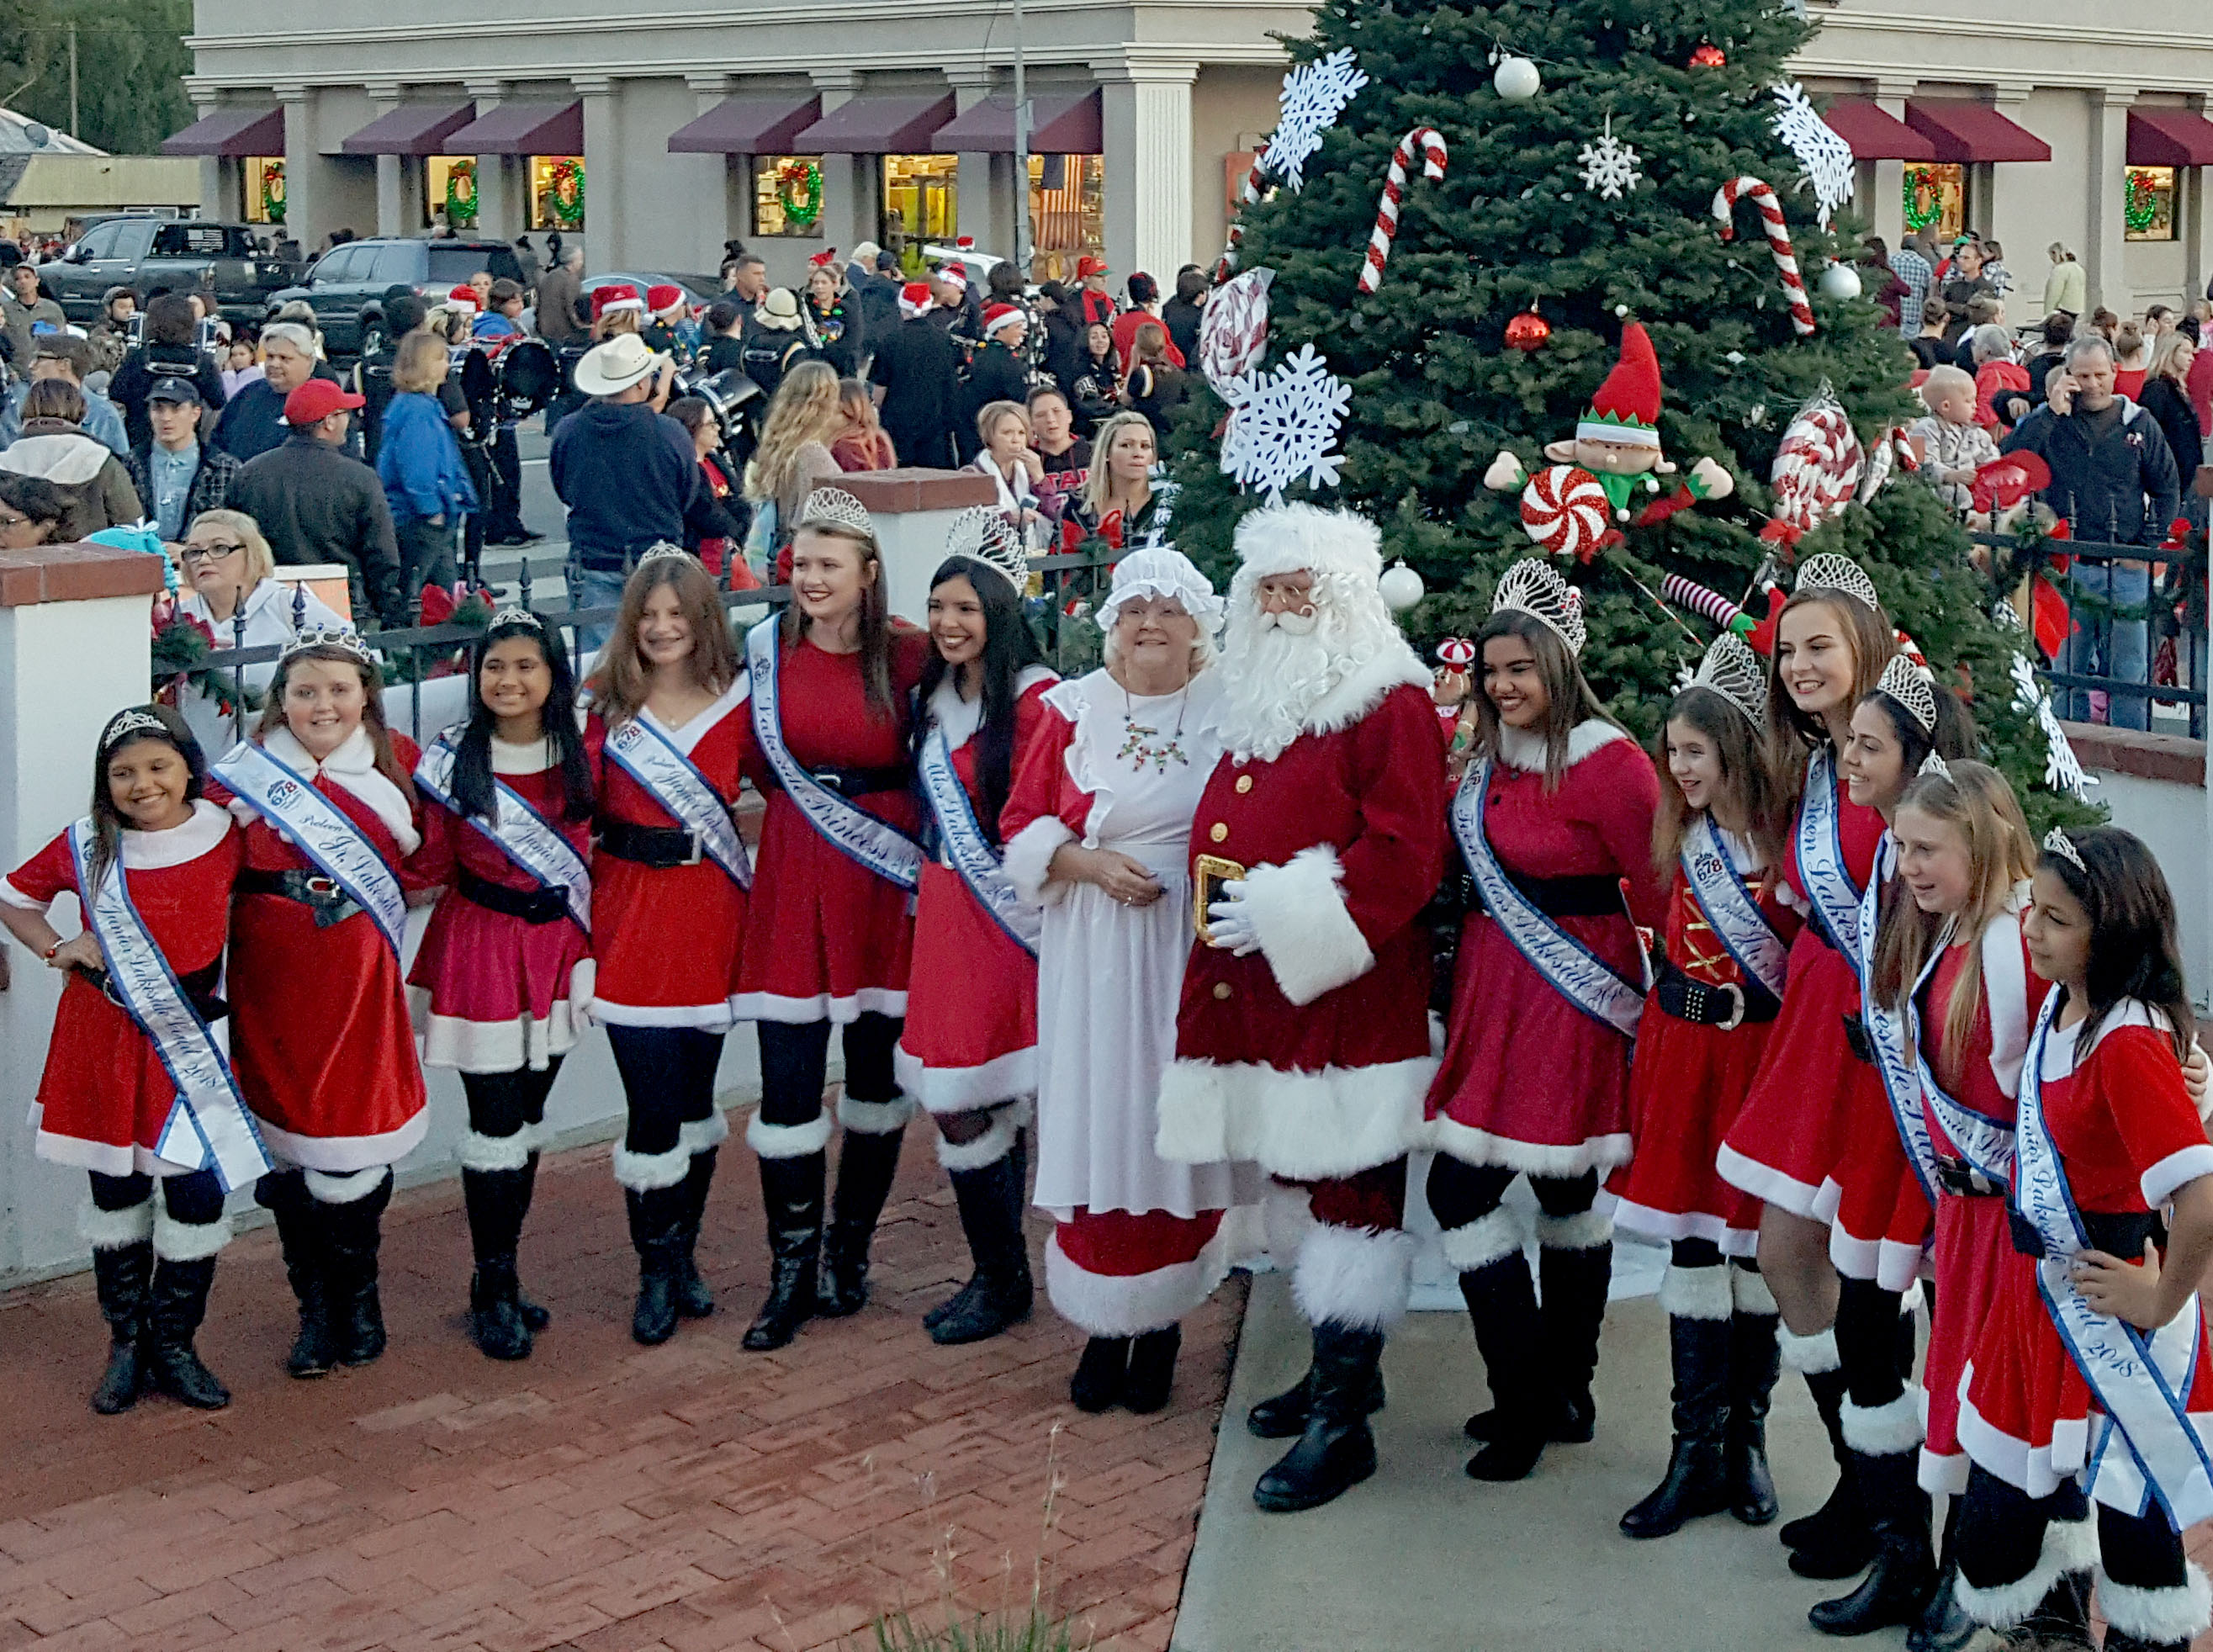 20th annual Spirit of Christmas brings holiday joy to Lakeside